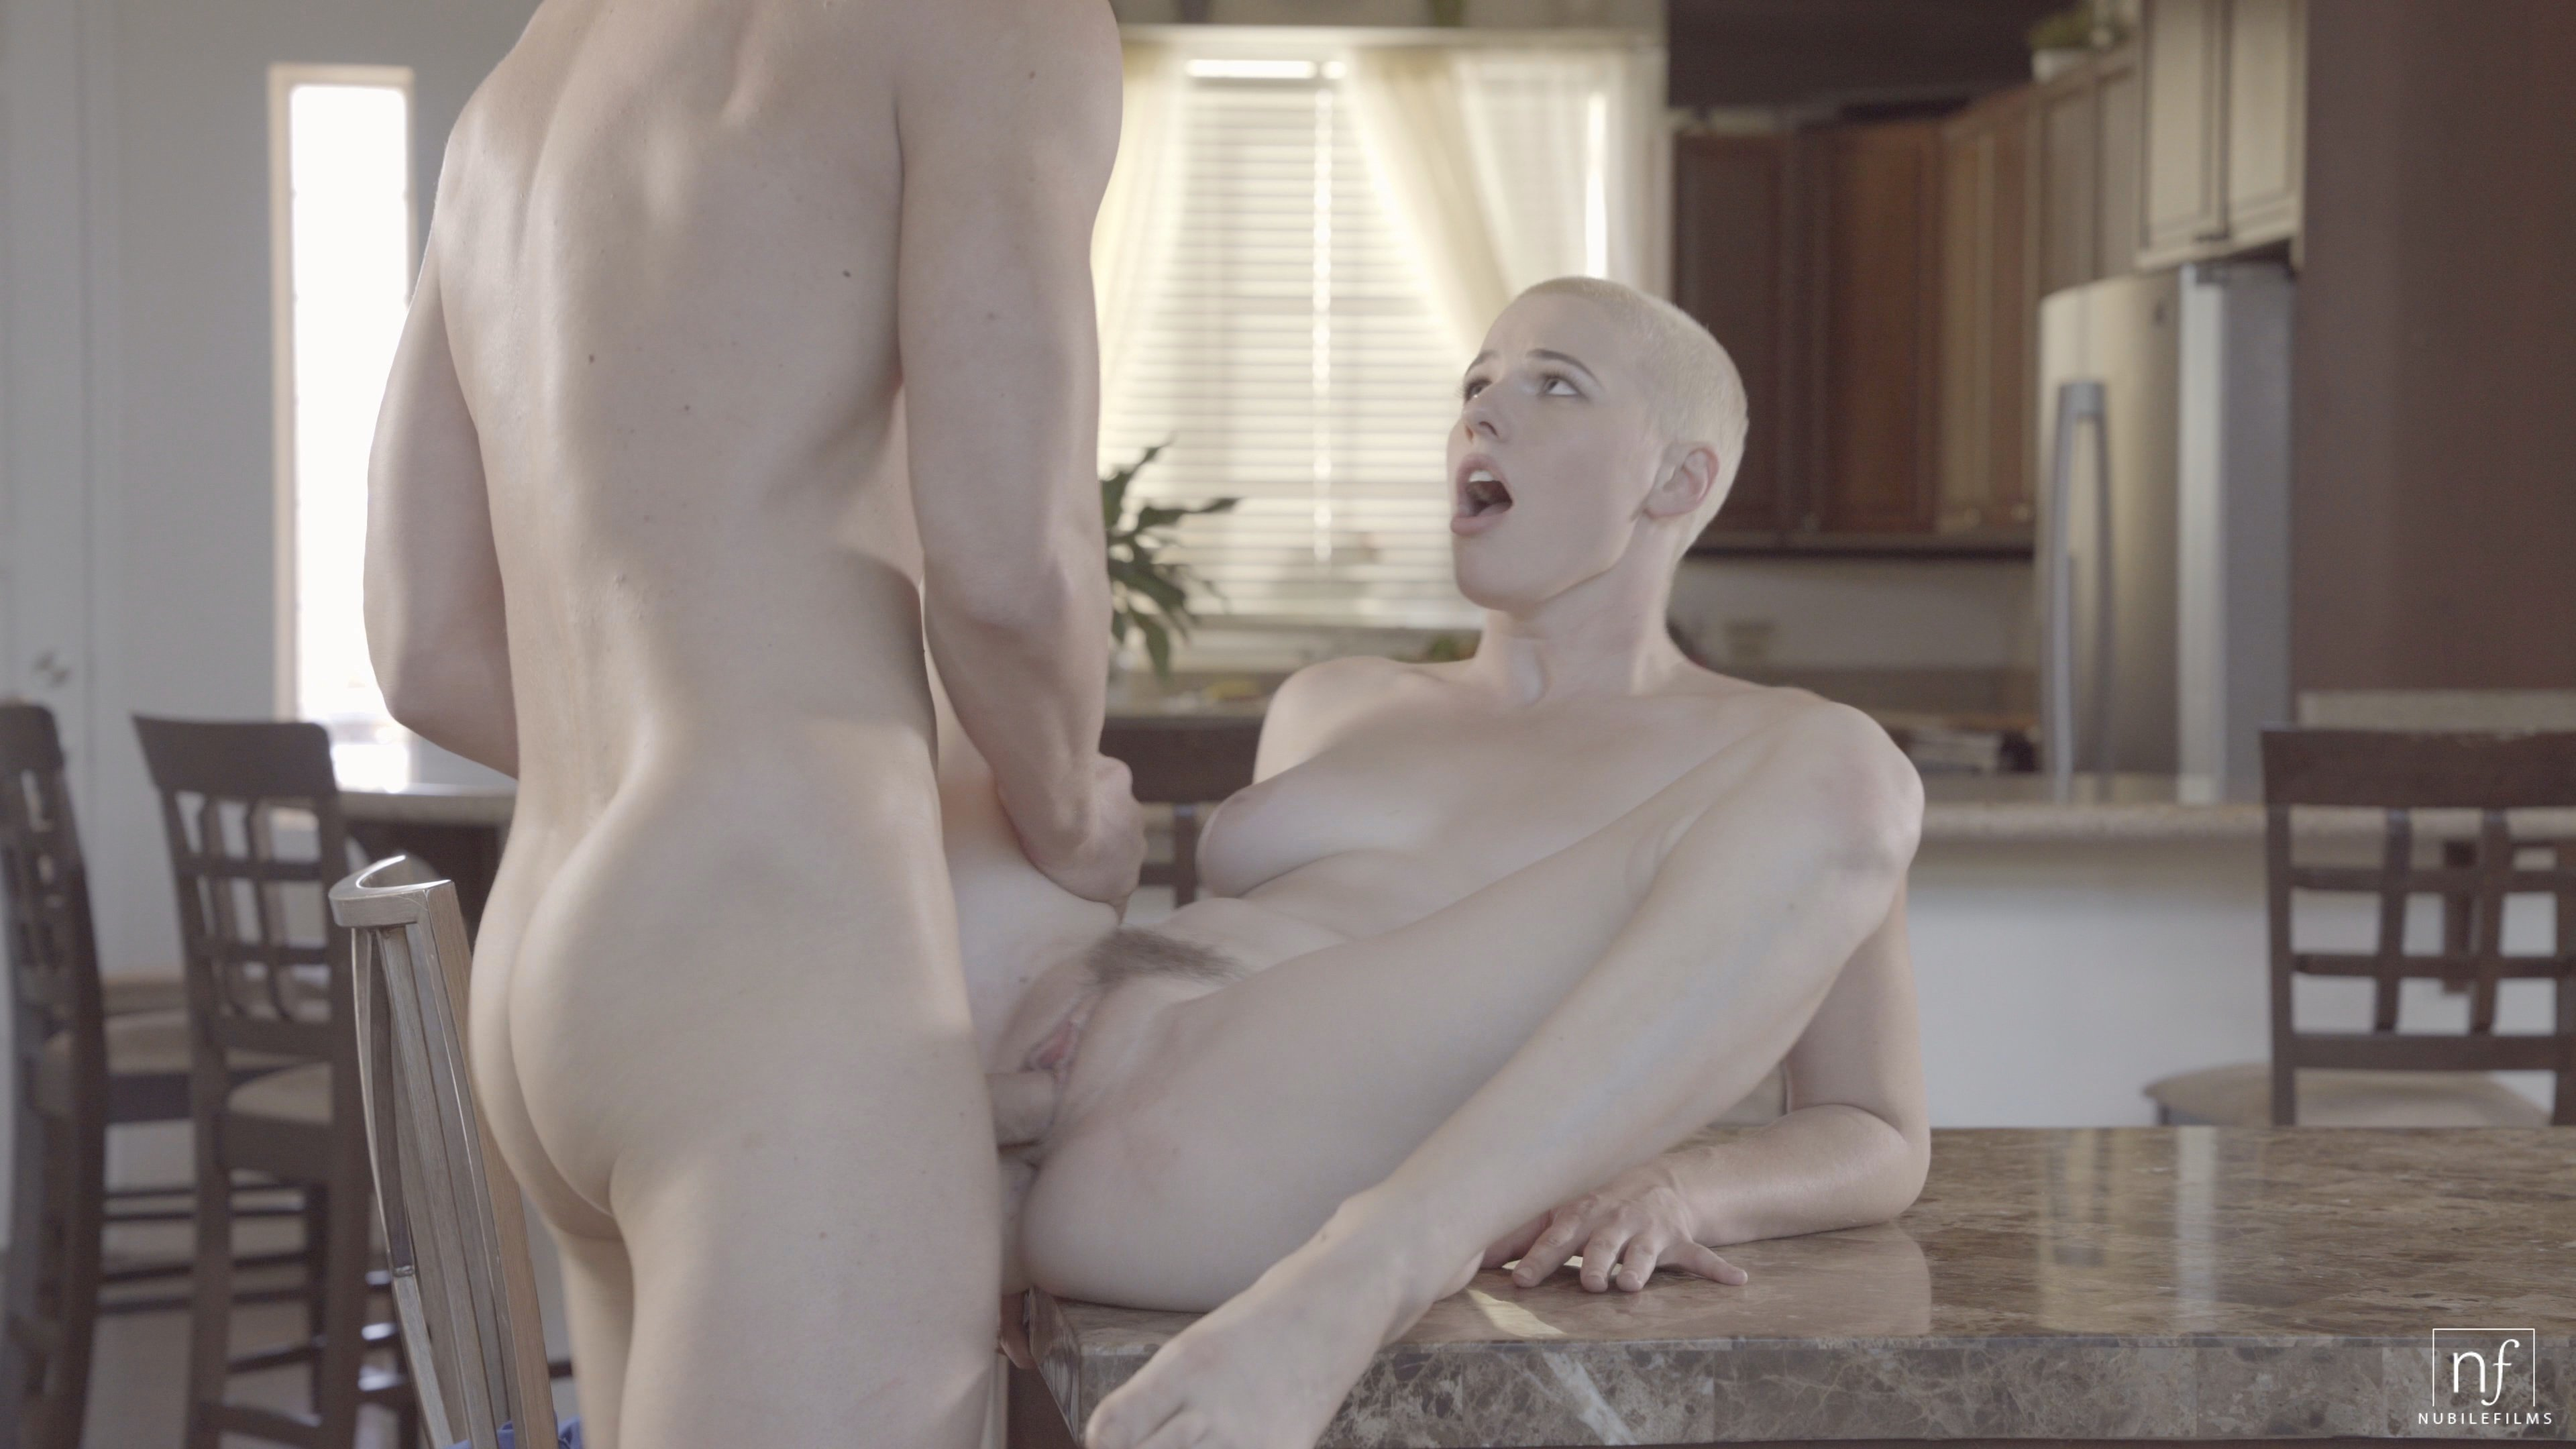 Big ass mom cleaning home naked